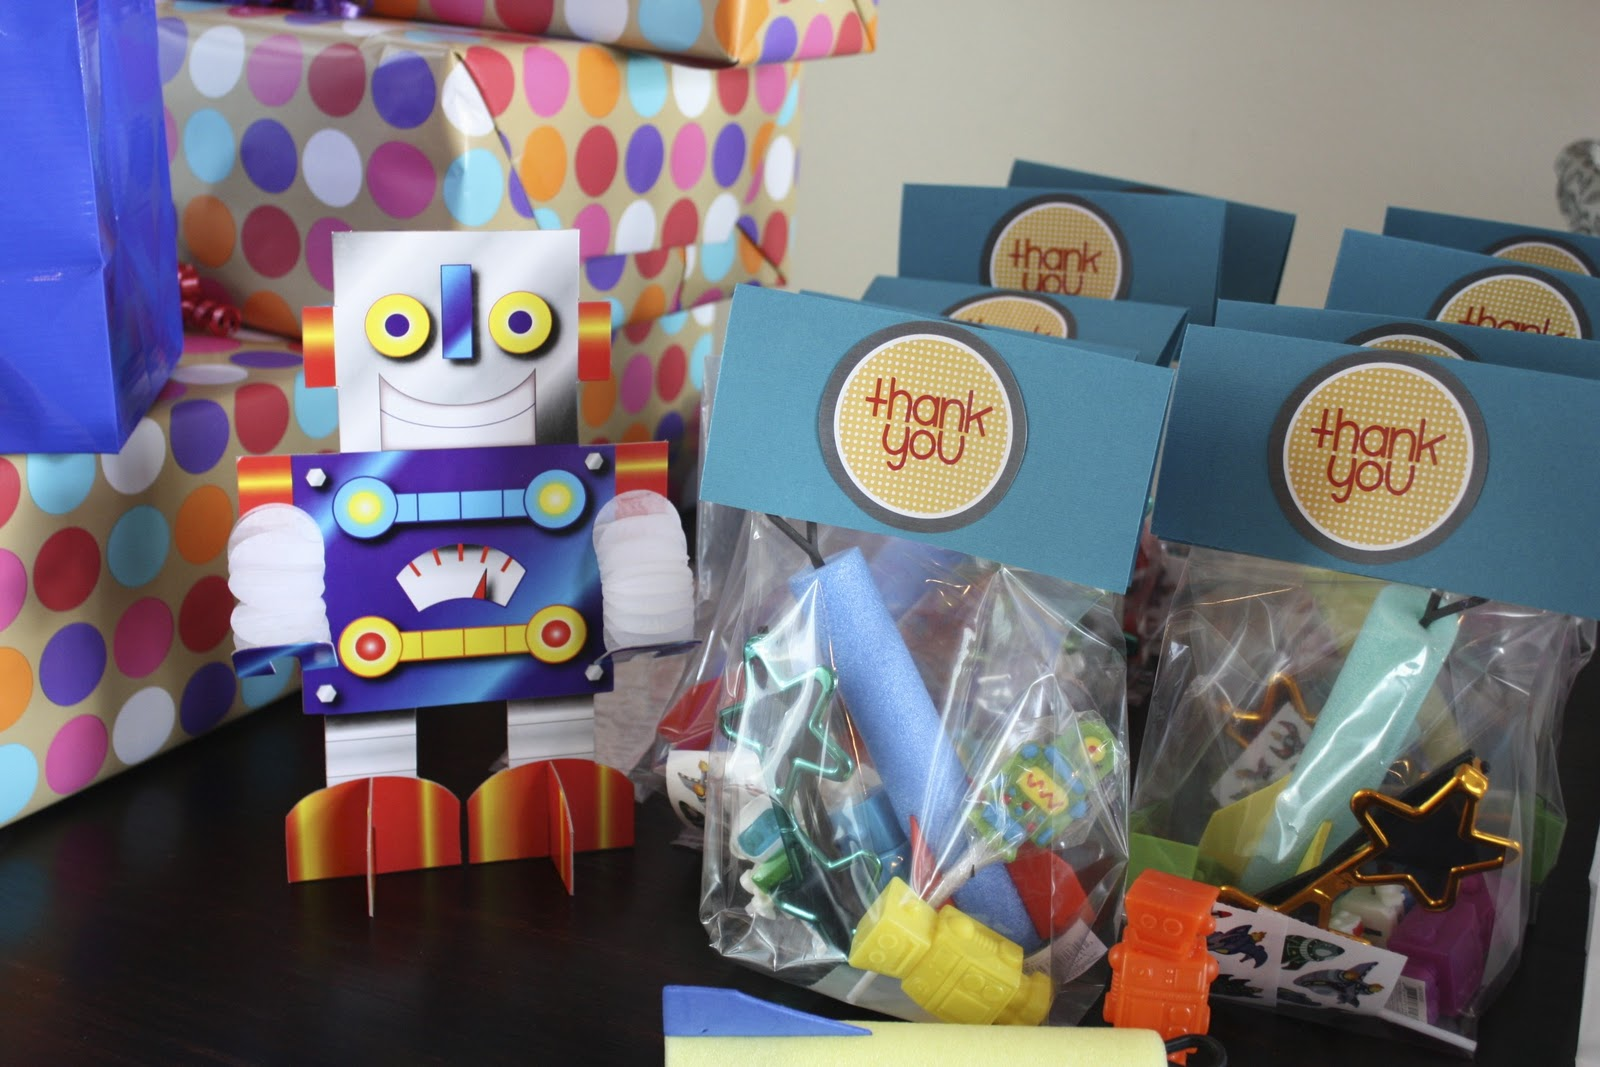 Robot Birthday Decorations: The Teleporting Toddler: Robot Birthday Party